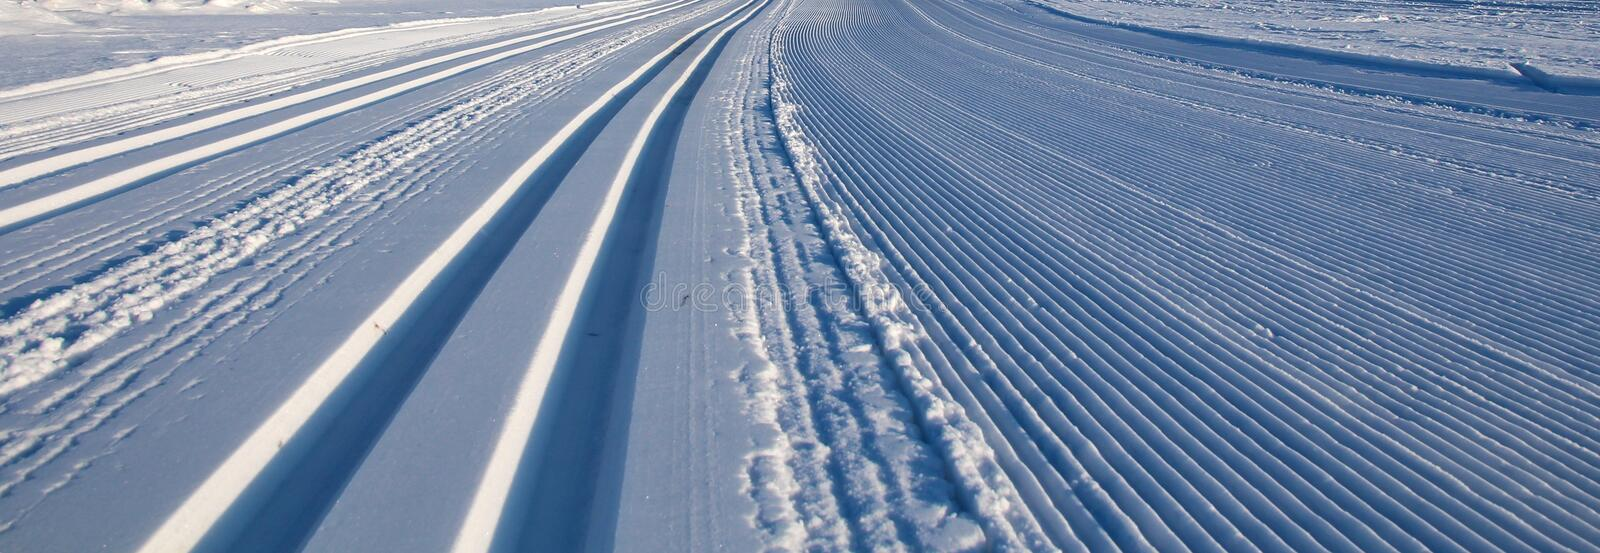 Cross country ski tracks royalty free stock image